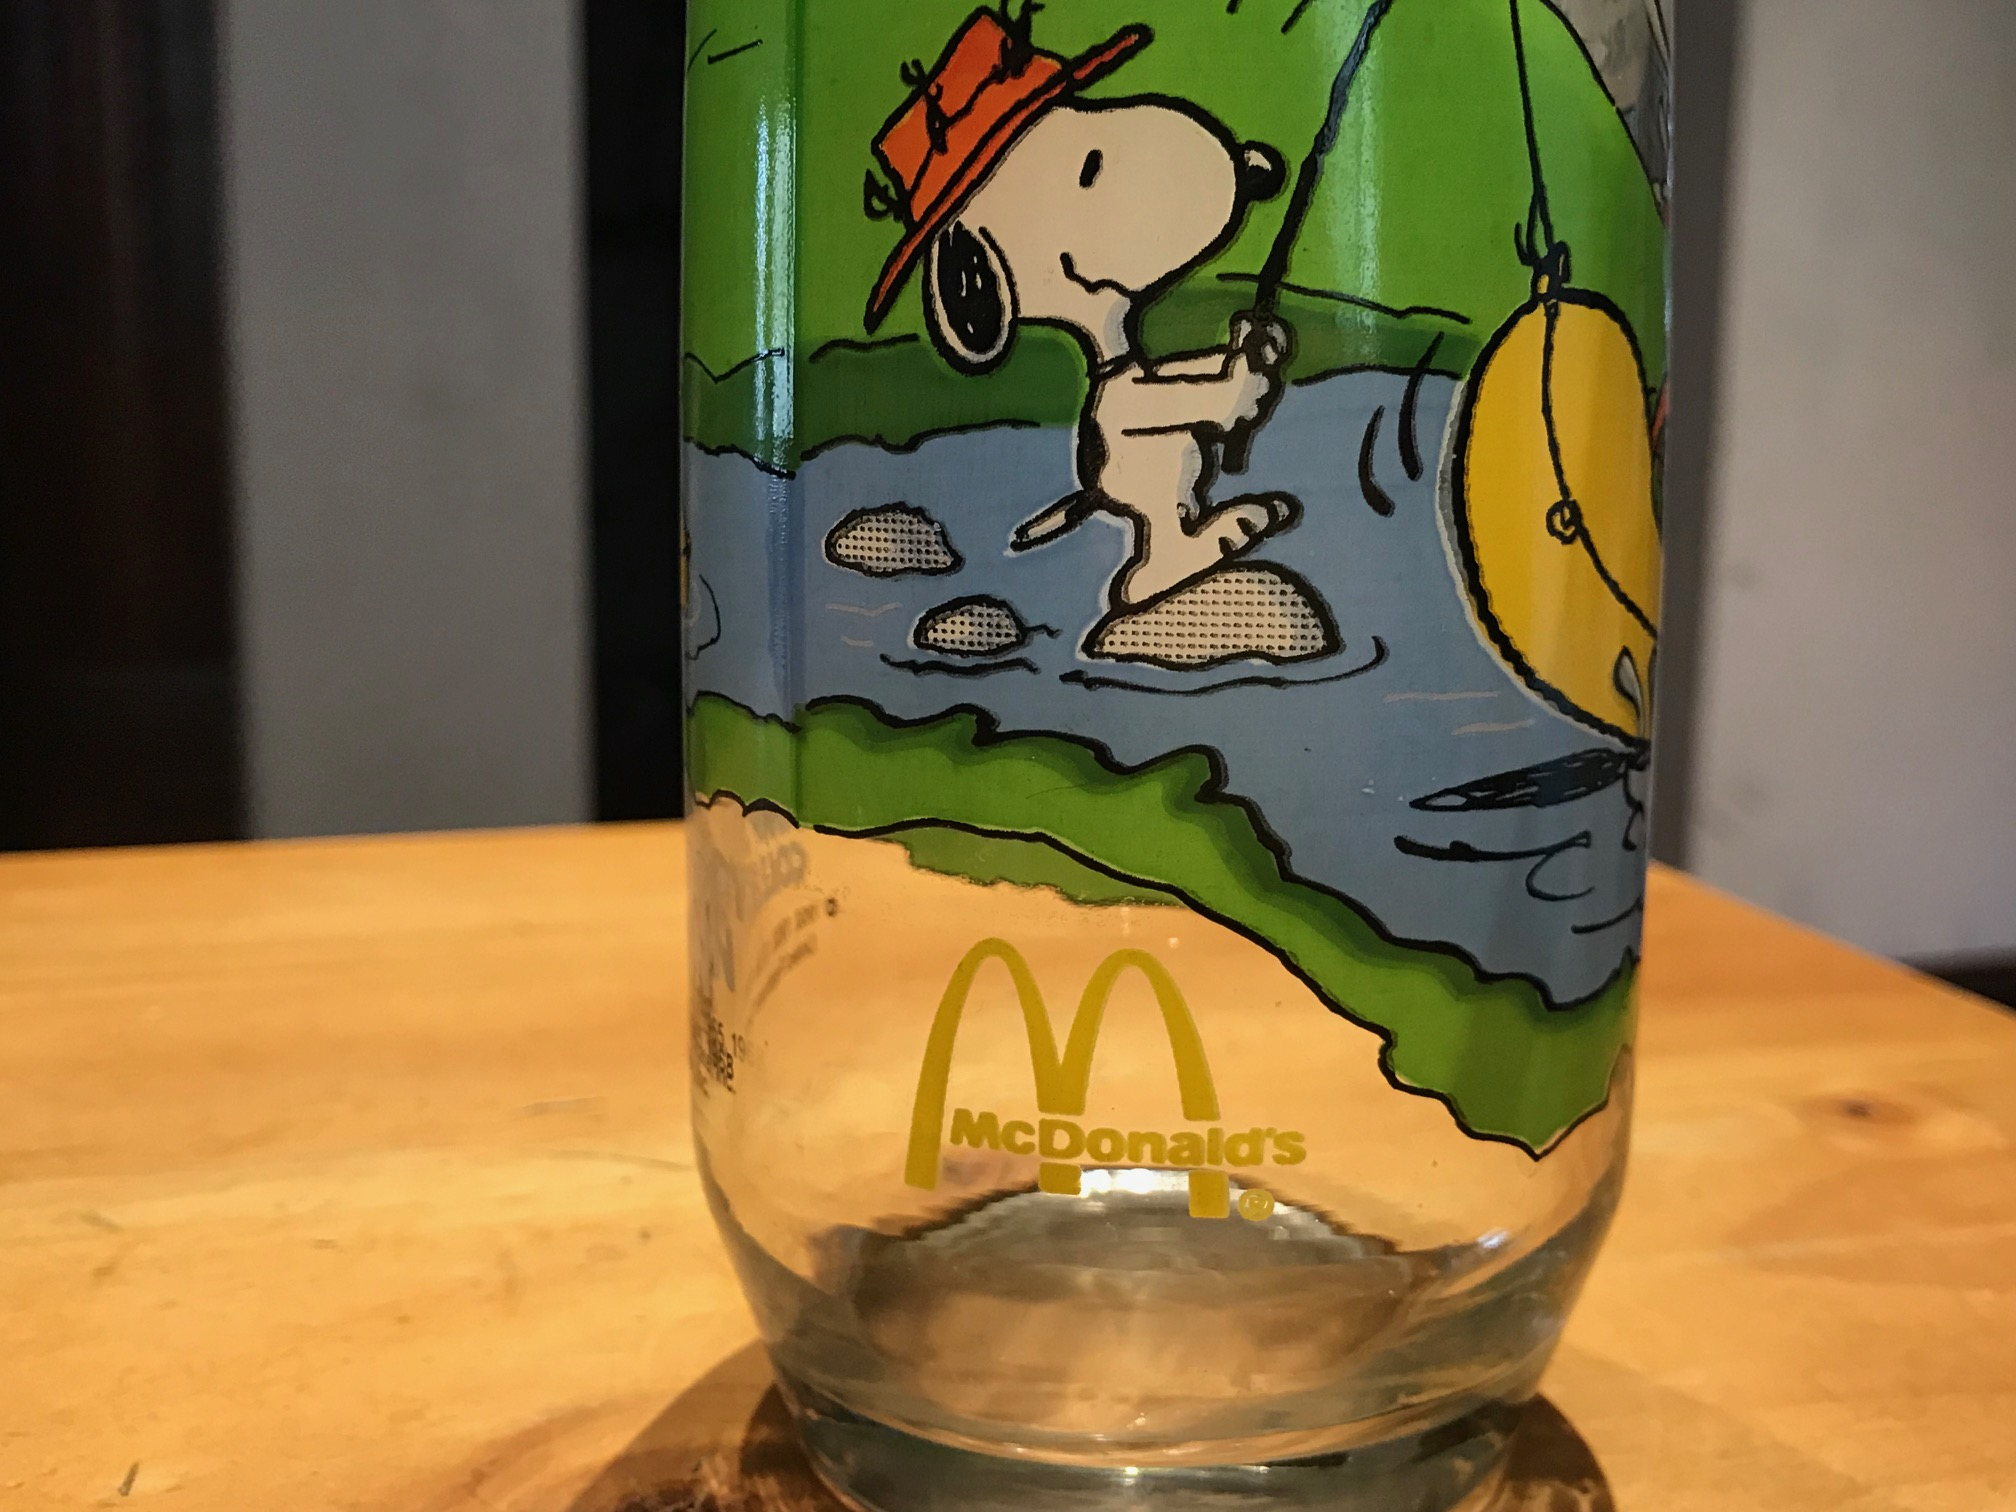 McDonald's (c. 1980s?) Camp Snoopy Collection Glass: 85,100 ppm Lead + 1,827 ppm Cadmium + 99 ppm MERCURY!